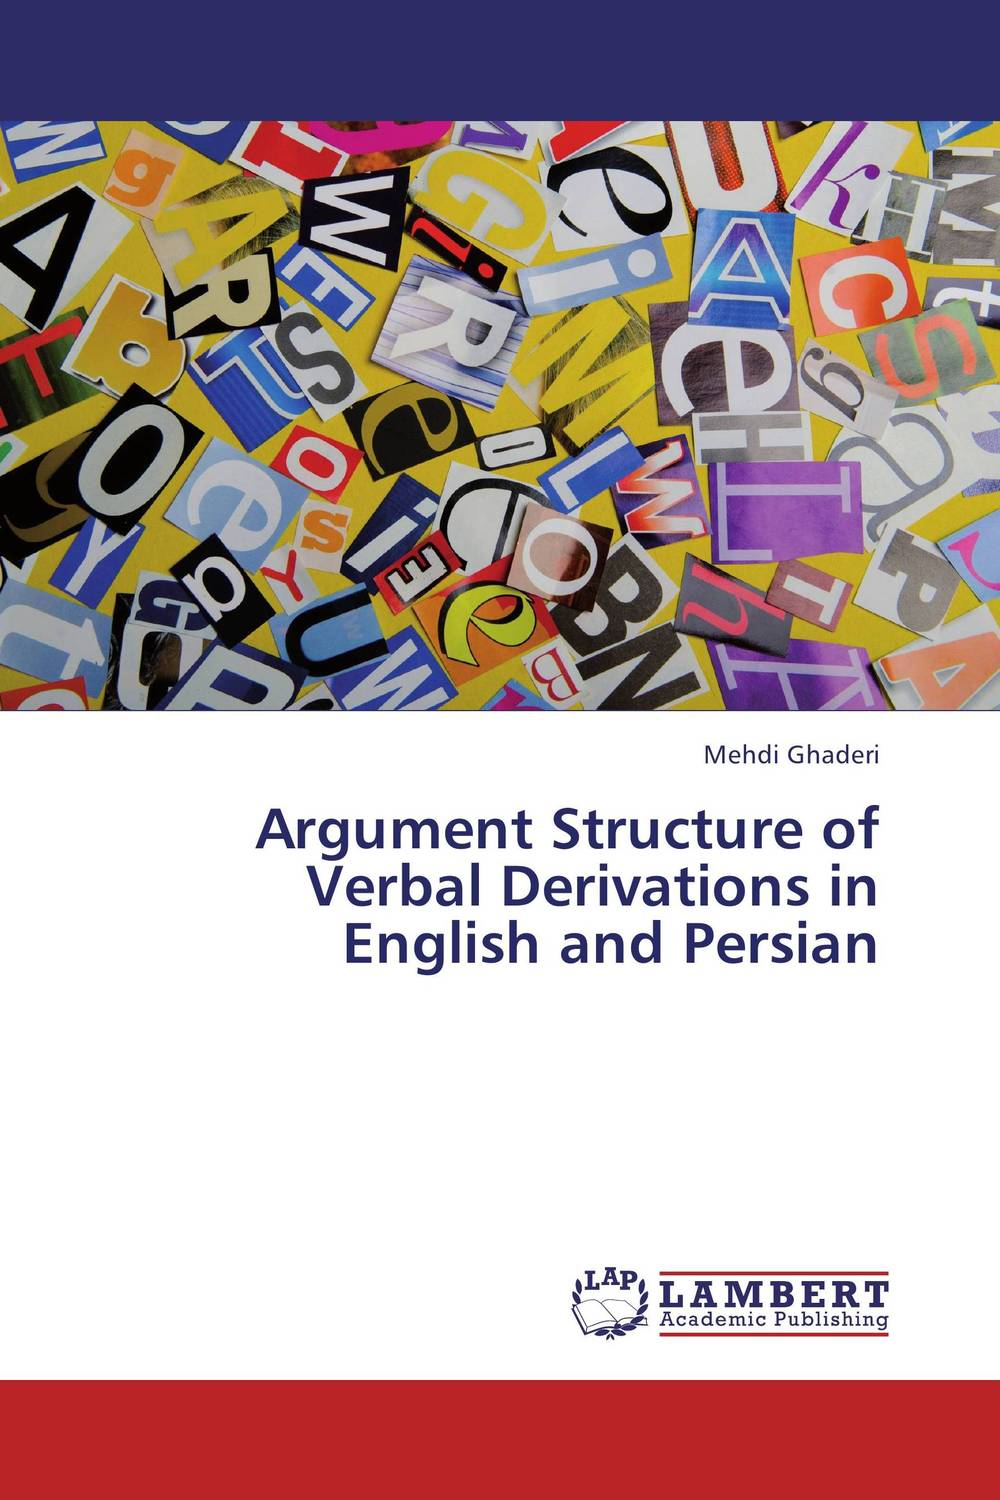 Argument Structure of Verbal Derivations in English and Persian